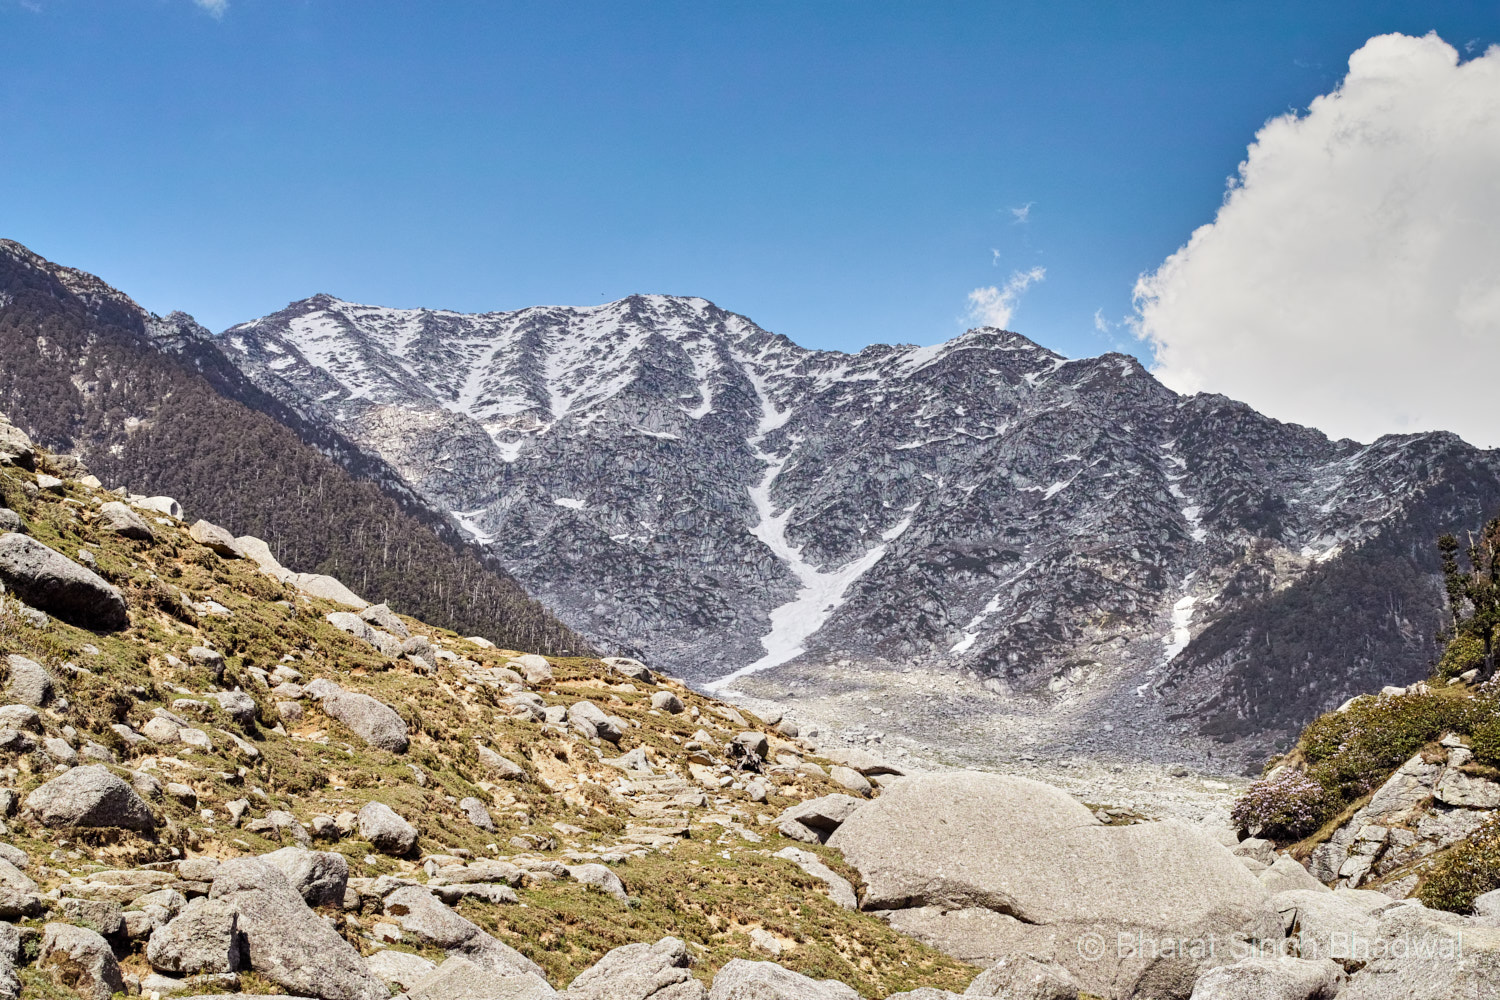 Kareri Lake trail (visible on the left) after the third and final stream crossing . Towering Minkiani Pass (4300m) in the background.